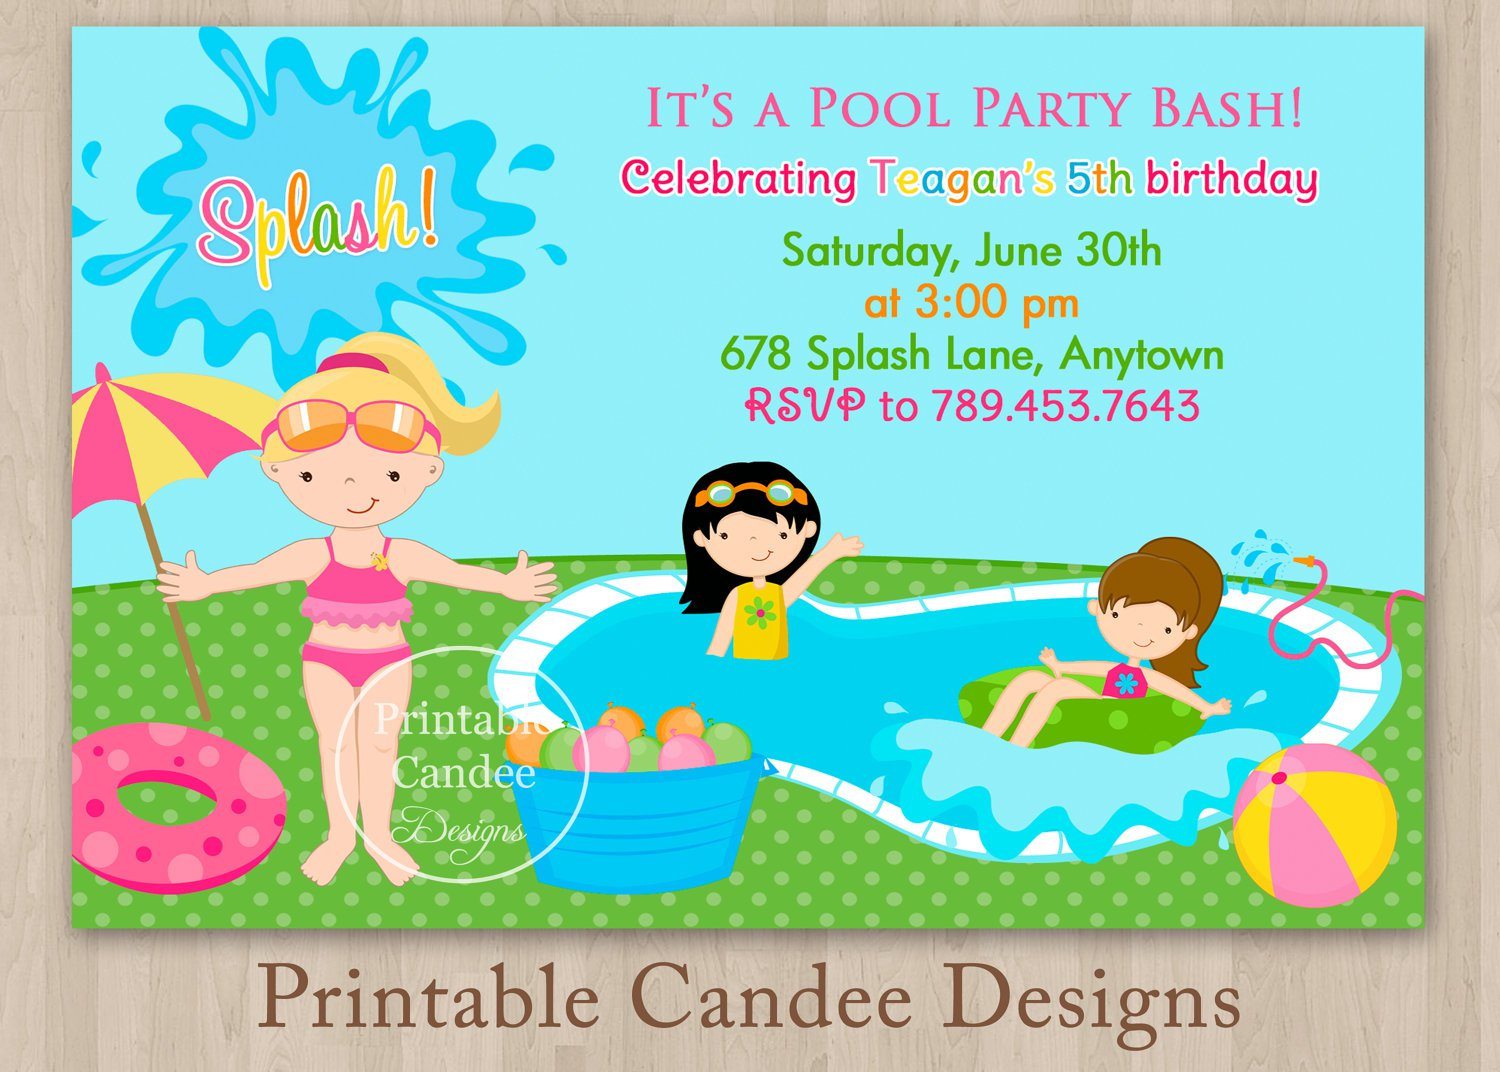 pool_party_invitations_for_kids_free_printable.jpg